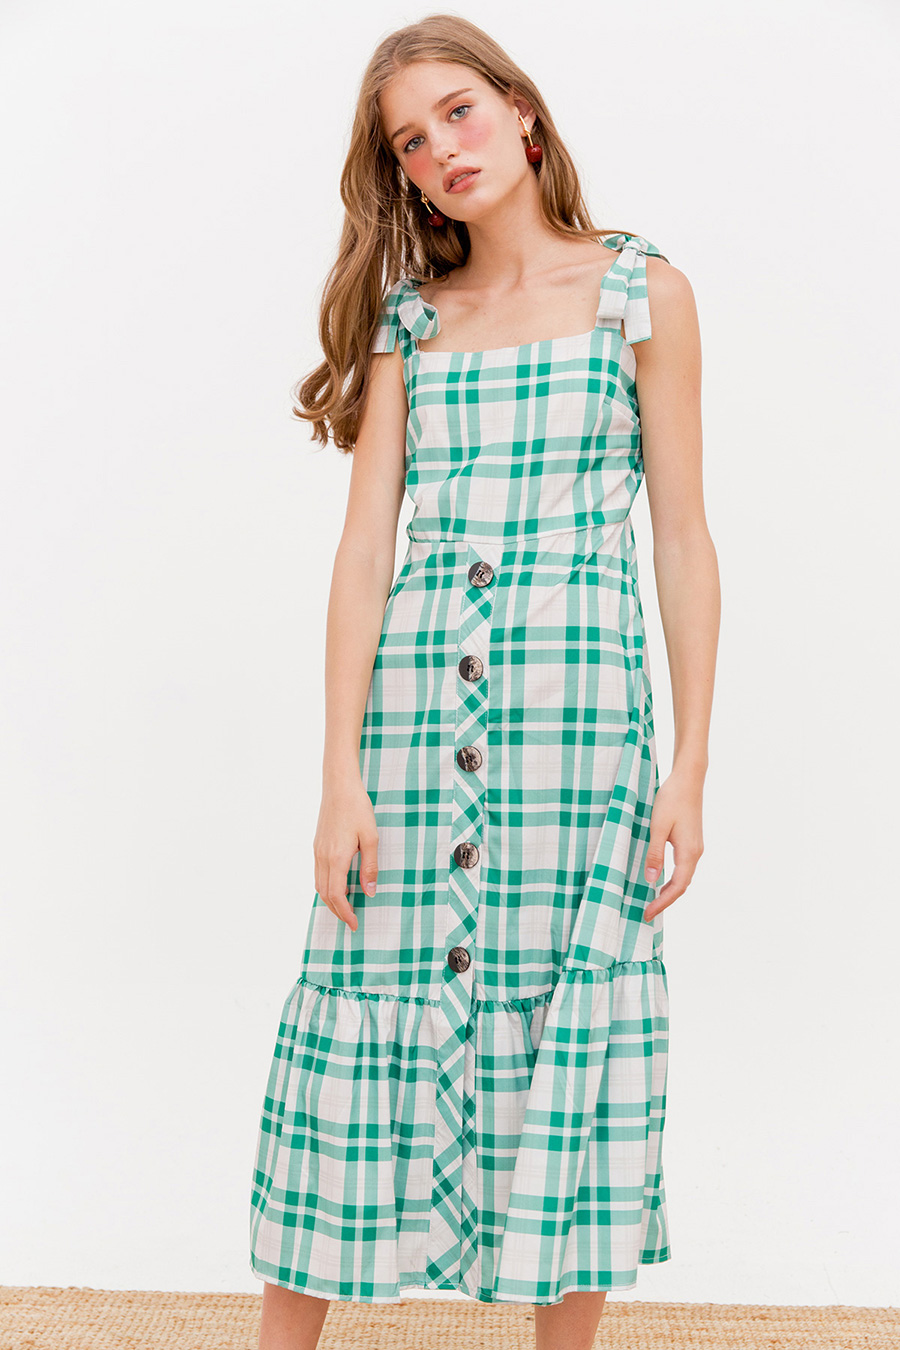 *BO* FRANKFORT MIDI DRESS - AVOCADO